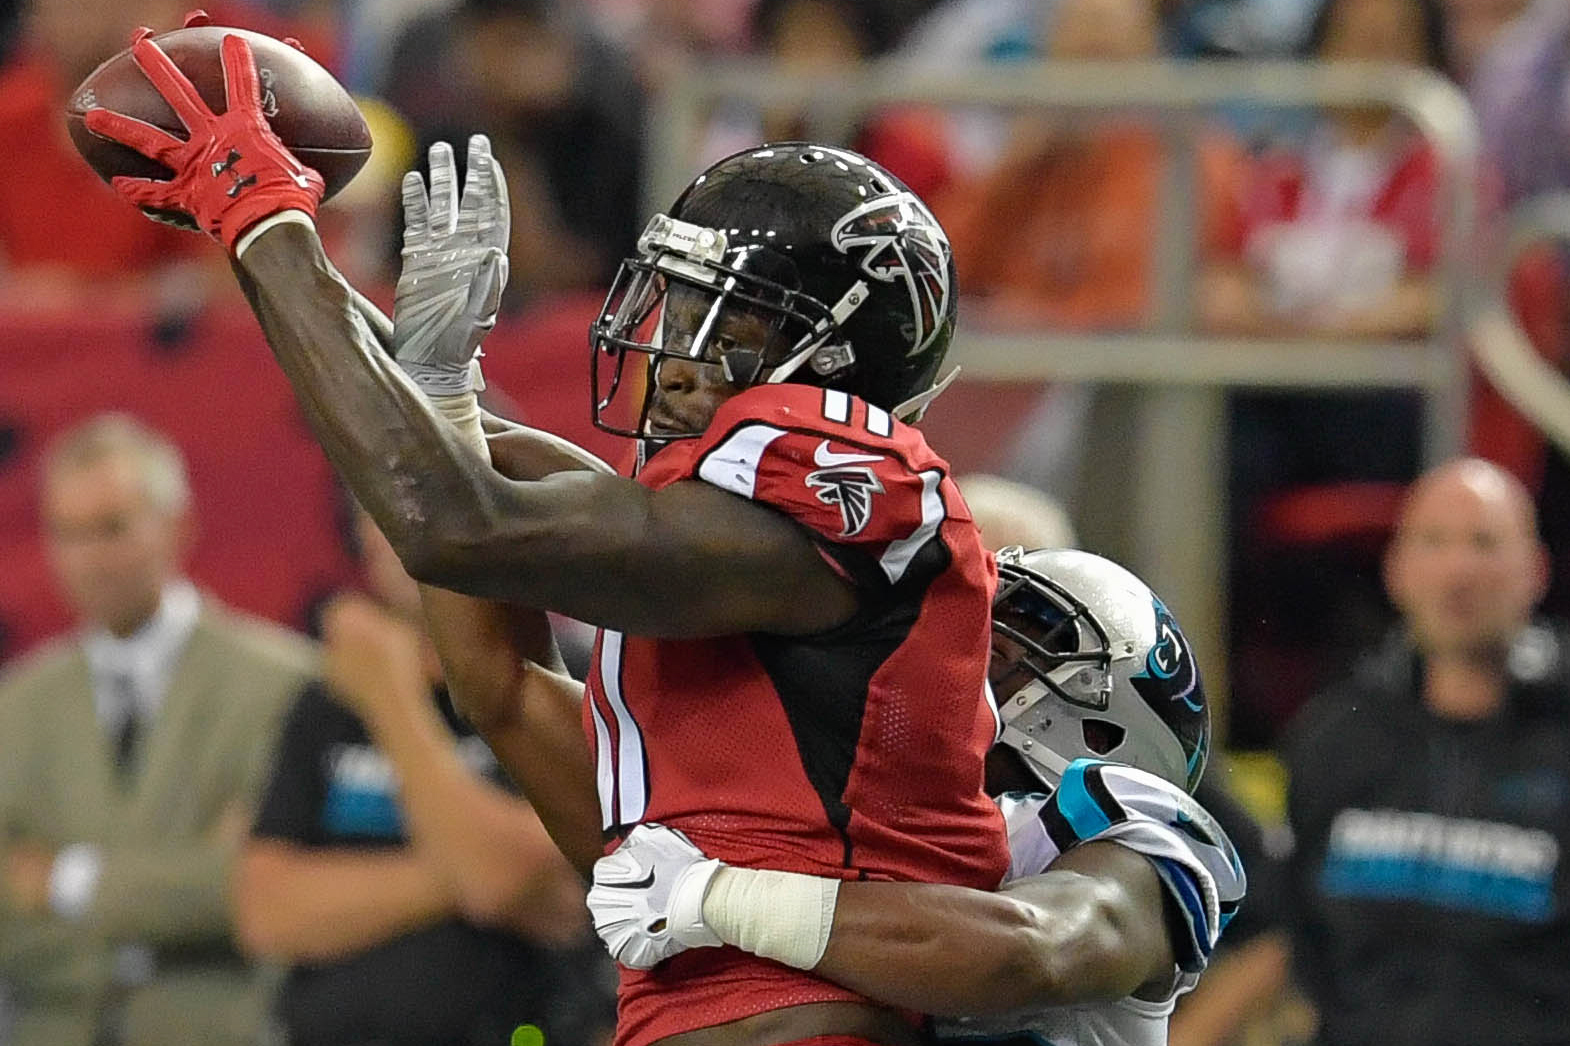 Atlanta Falcons wide receiver Julio Jones (11) makes a catch against Carolina Panthers cornerback Bene' Benwikere (25) during the second half at the Georgia Dome.